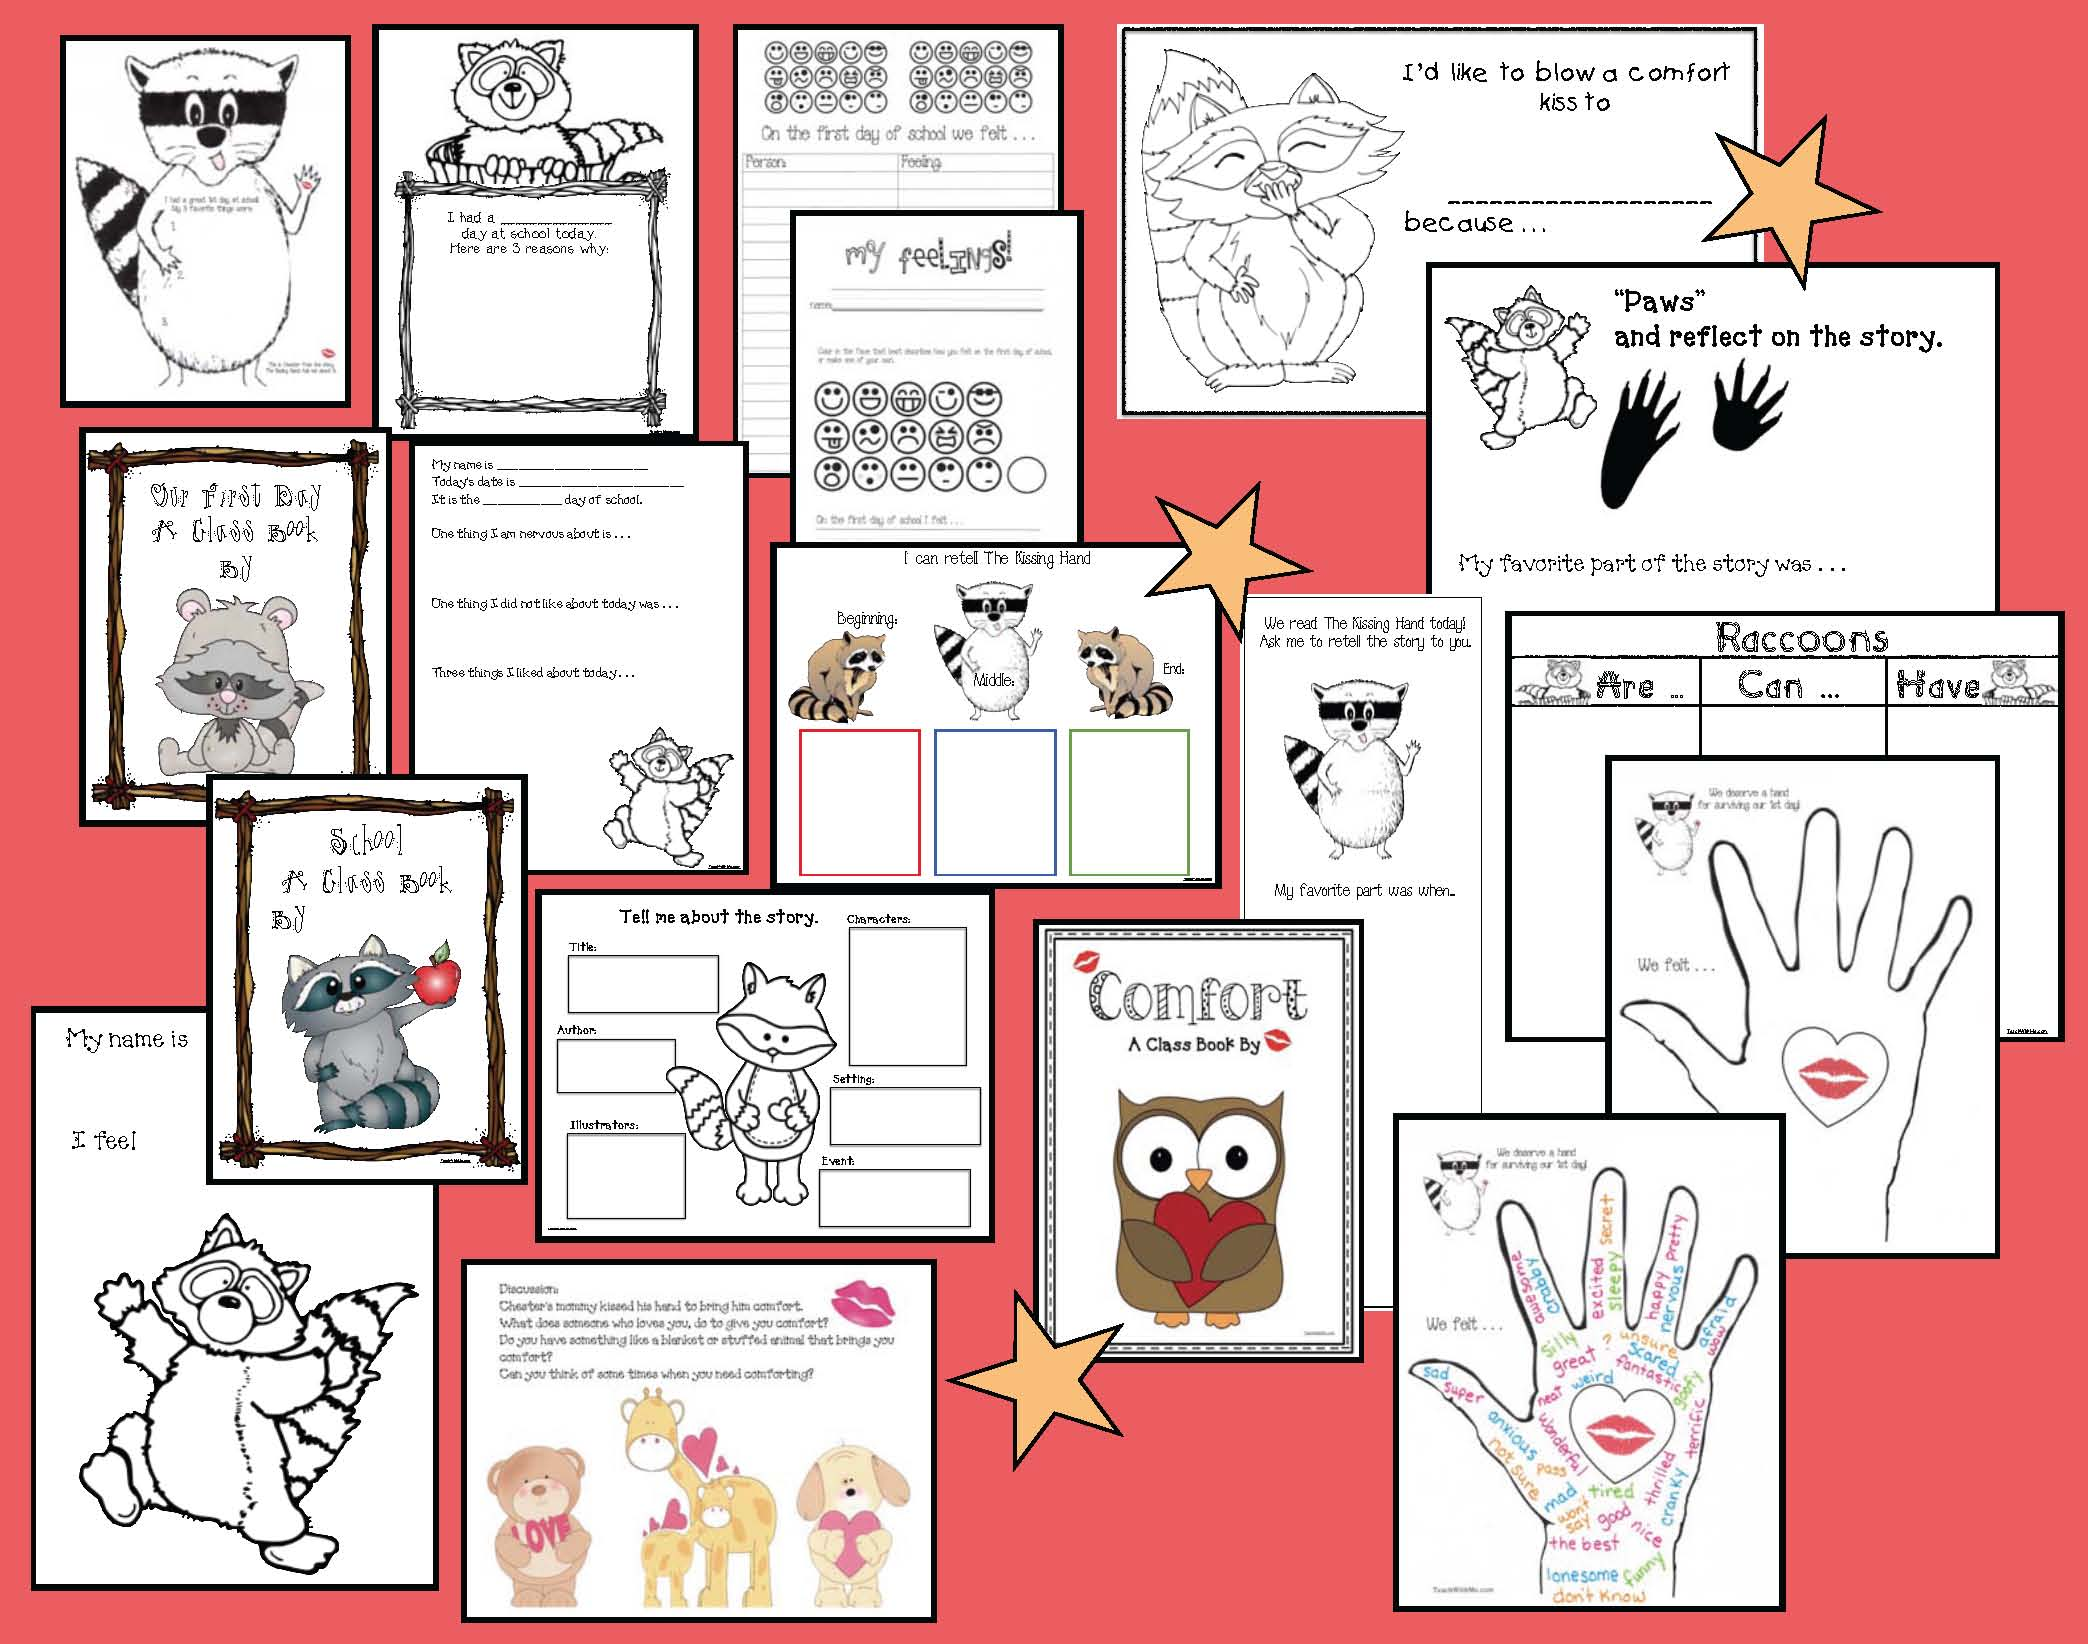 Kissing hand activities, raccoon crafts, raccoon activities, literacy packets, audrey penn, kissing hand crafts, back to school activities, back to school books for elementary